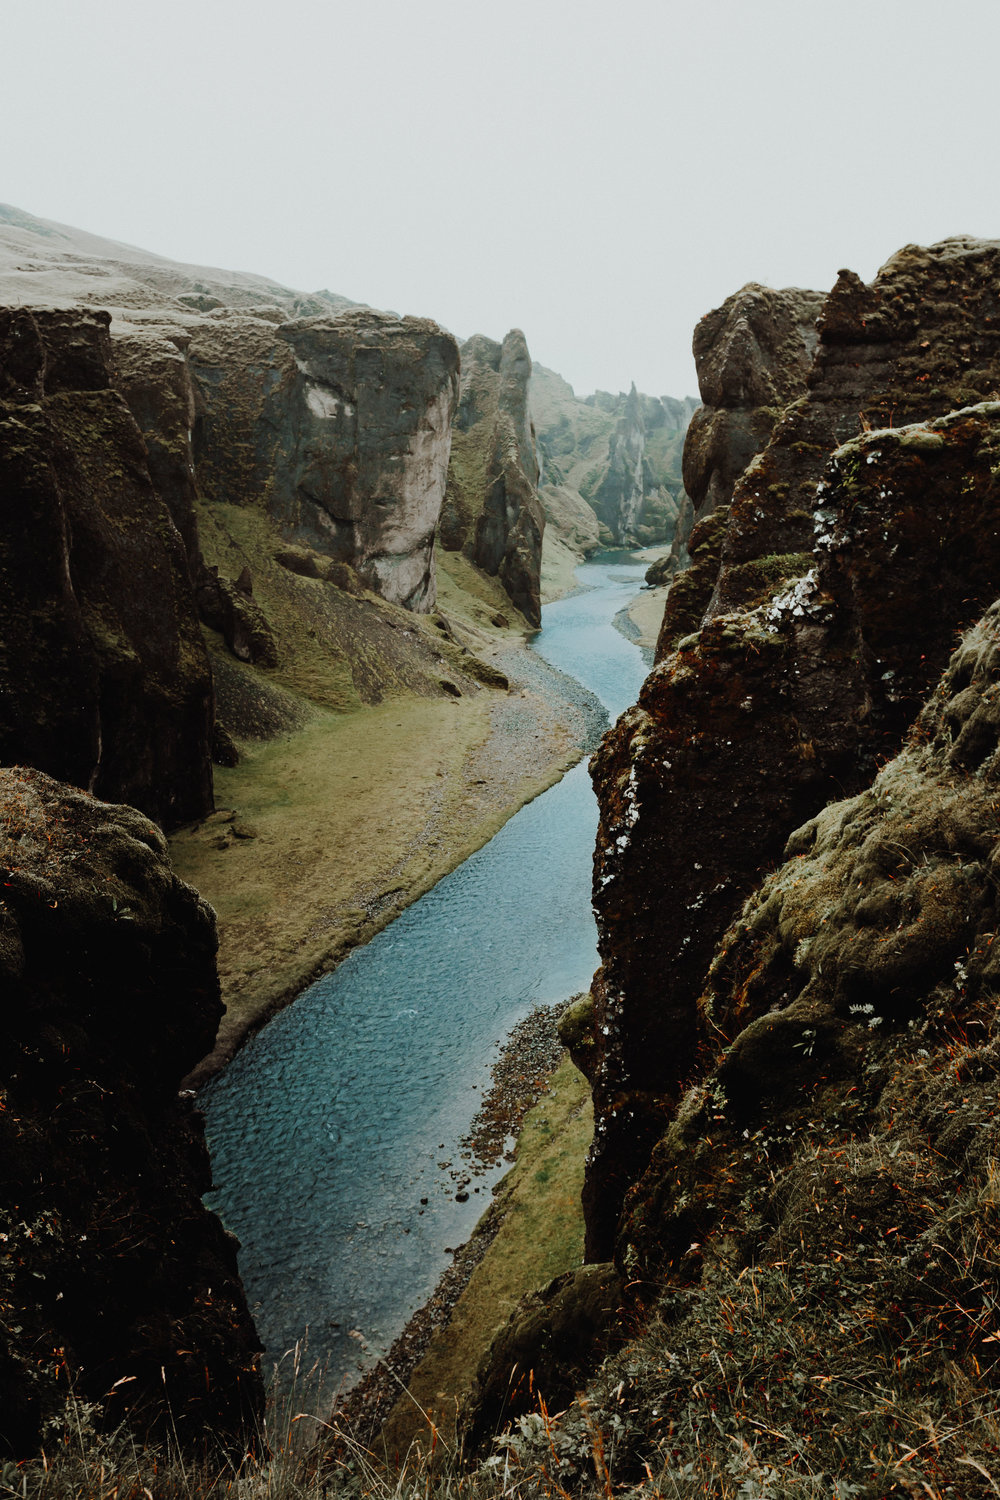 09-iceland-canyon-turquoise-river-hiking-anna-elina-lahti-photographer.jpg